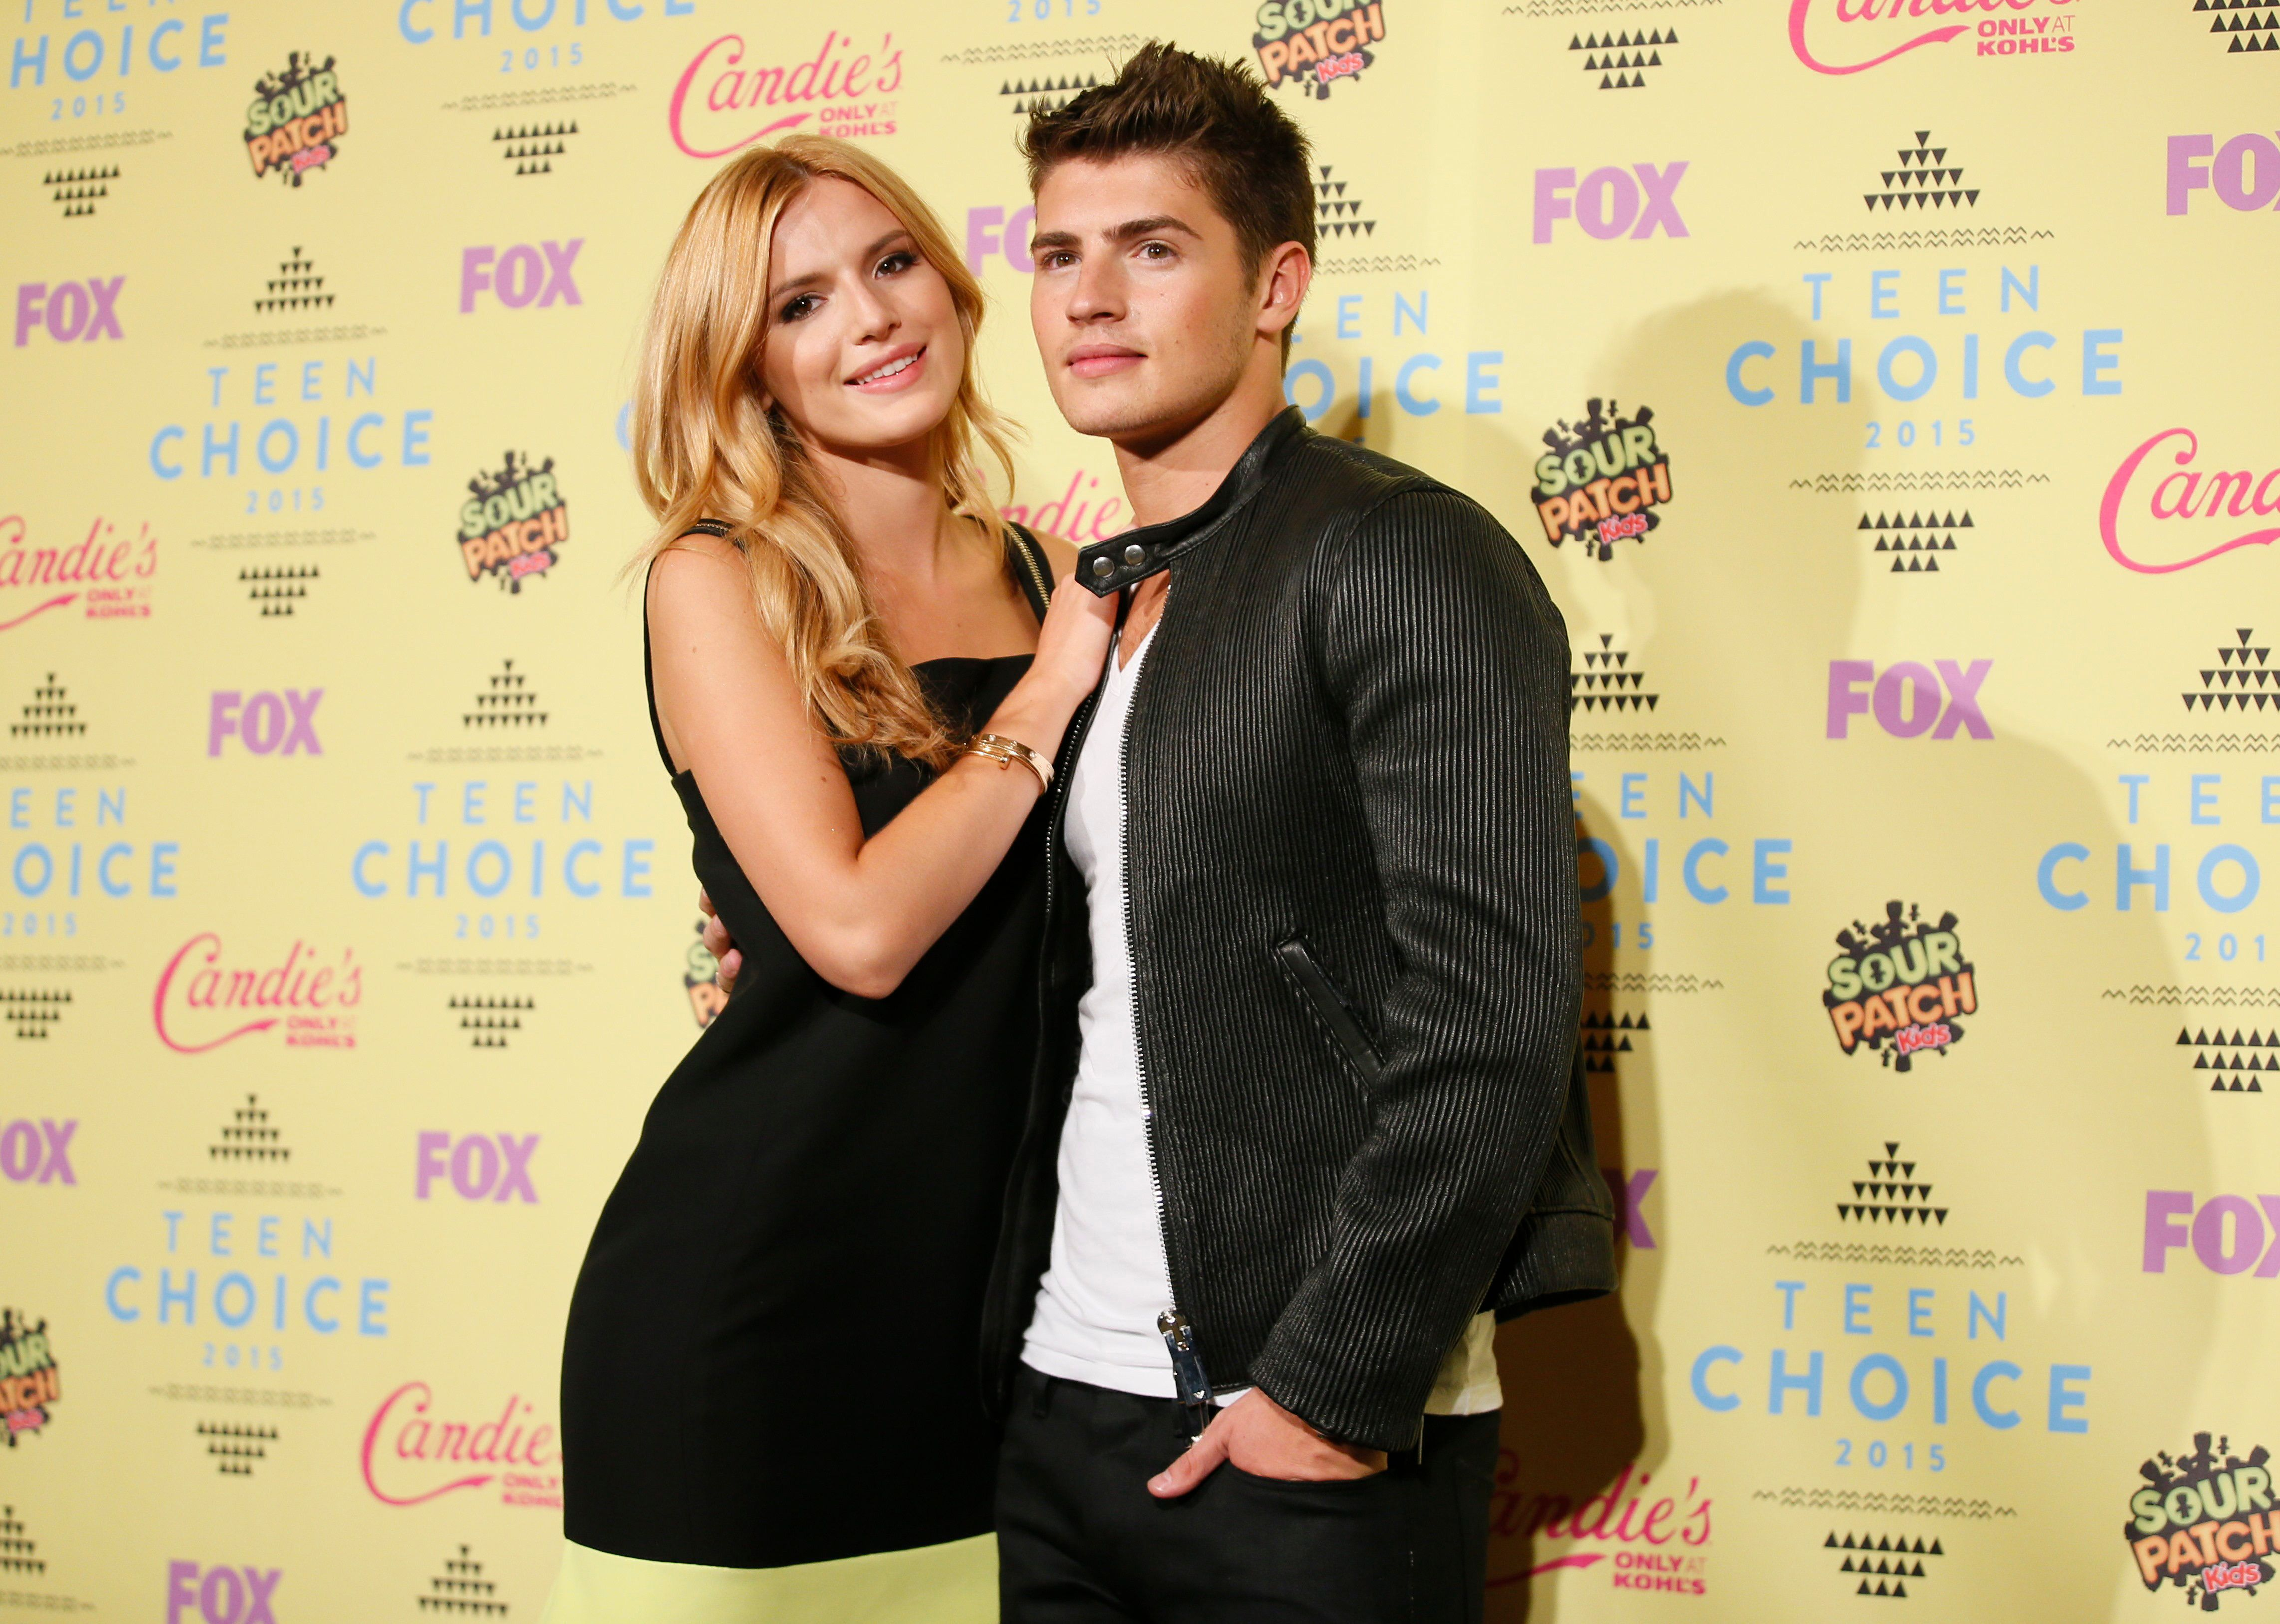 Actors Bella Thorne and Gregg Sulkin pose backstage at the 2015 Teen Choice Awards in Los Angeles, California, United States August 16, 2015.  REUTERS/Danny Moloshok